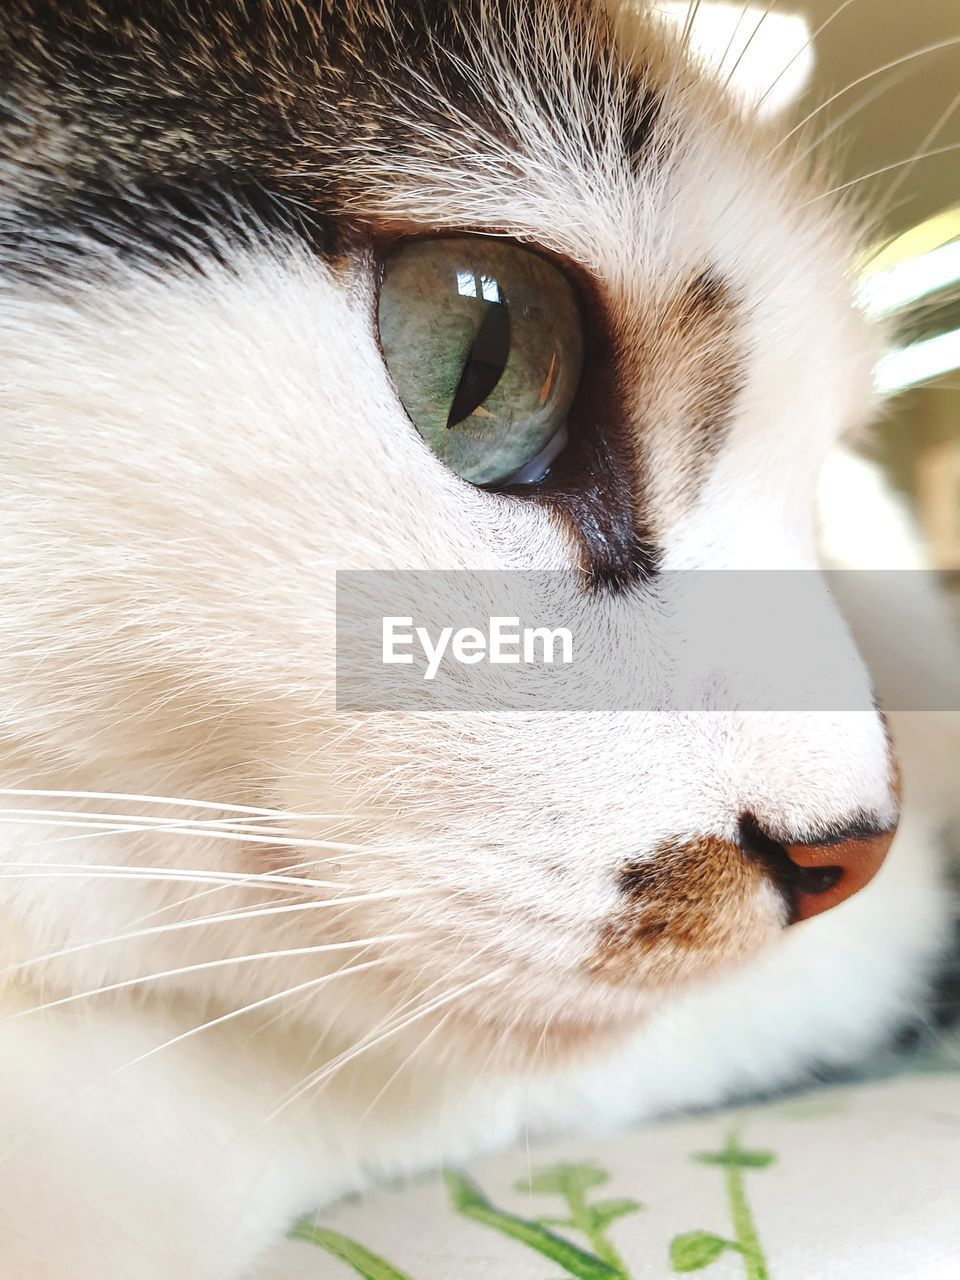 pets, domestic animals, mammal, domestic, one animal, animal themes, animal, vertebrate, close-up, animal body part, cat, feline, animal head, domestic cat, looking away, looking, whisker, no people, animal eye, day, snout, animal nose, animal mouth